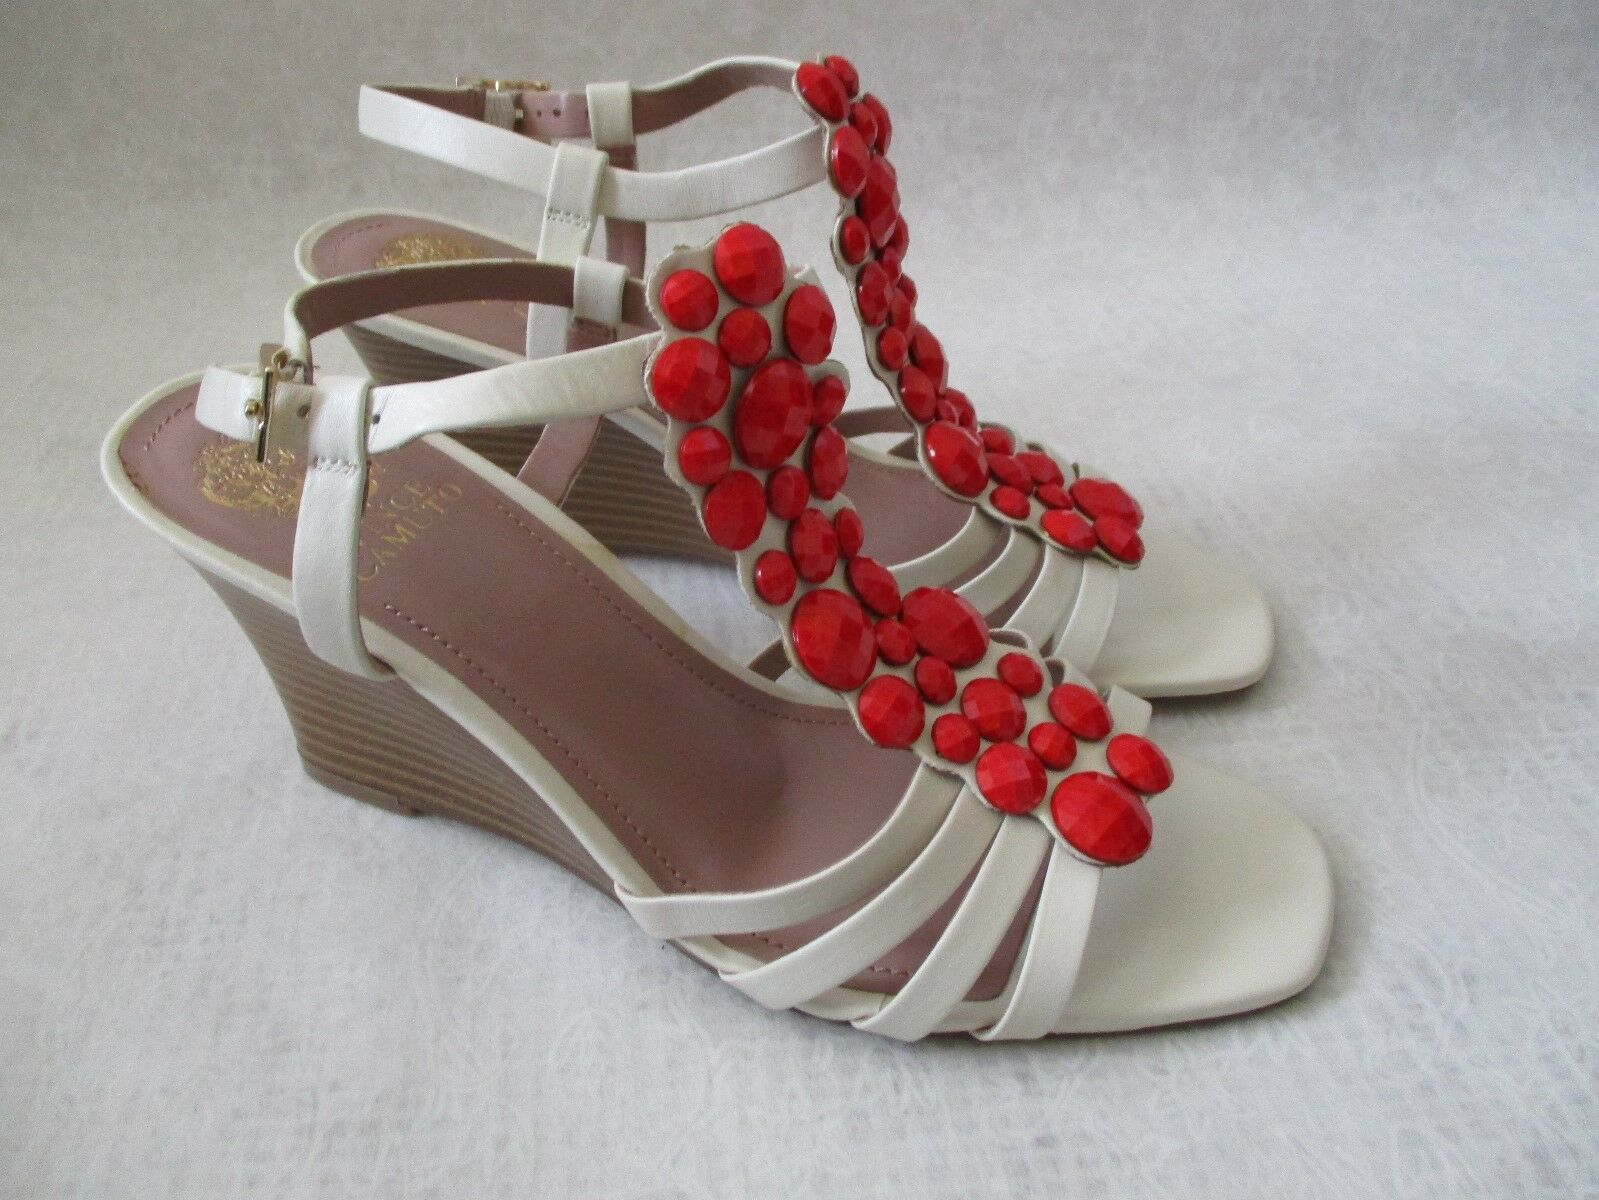 79 VINCE CAMUTO LEATHER WEISS ORLOV/ROT JEWELED WEDGE Schuhe SIZE 61/2 W  - NEU